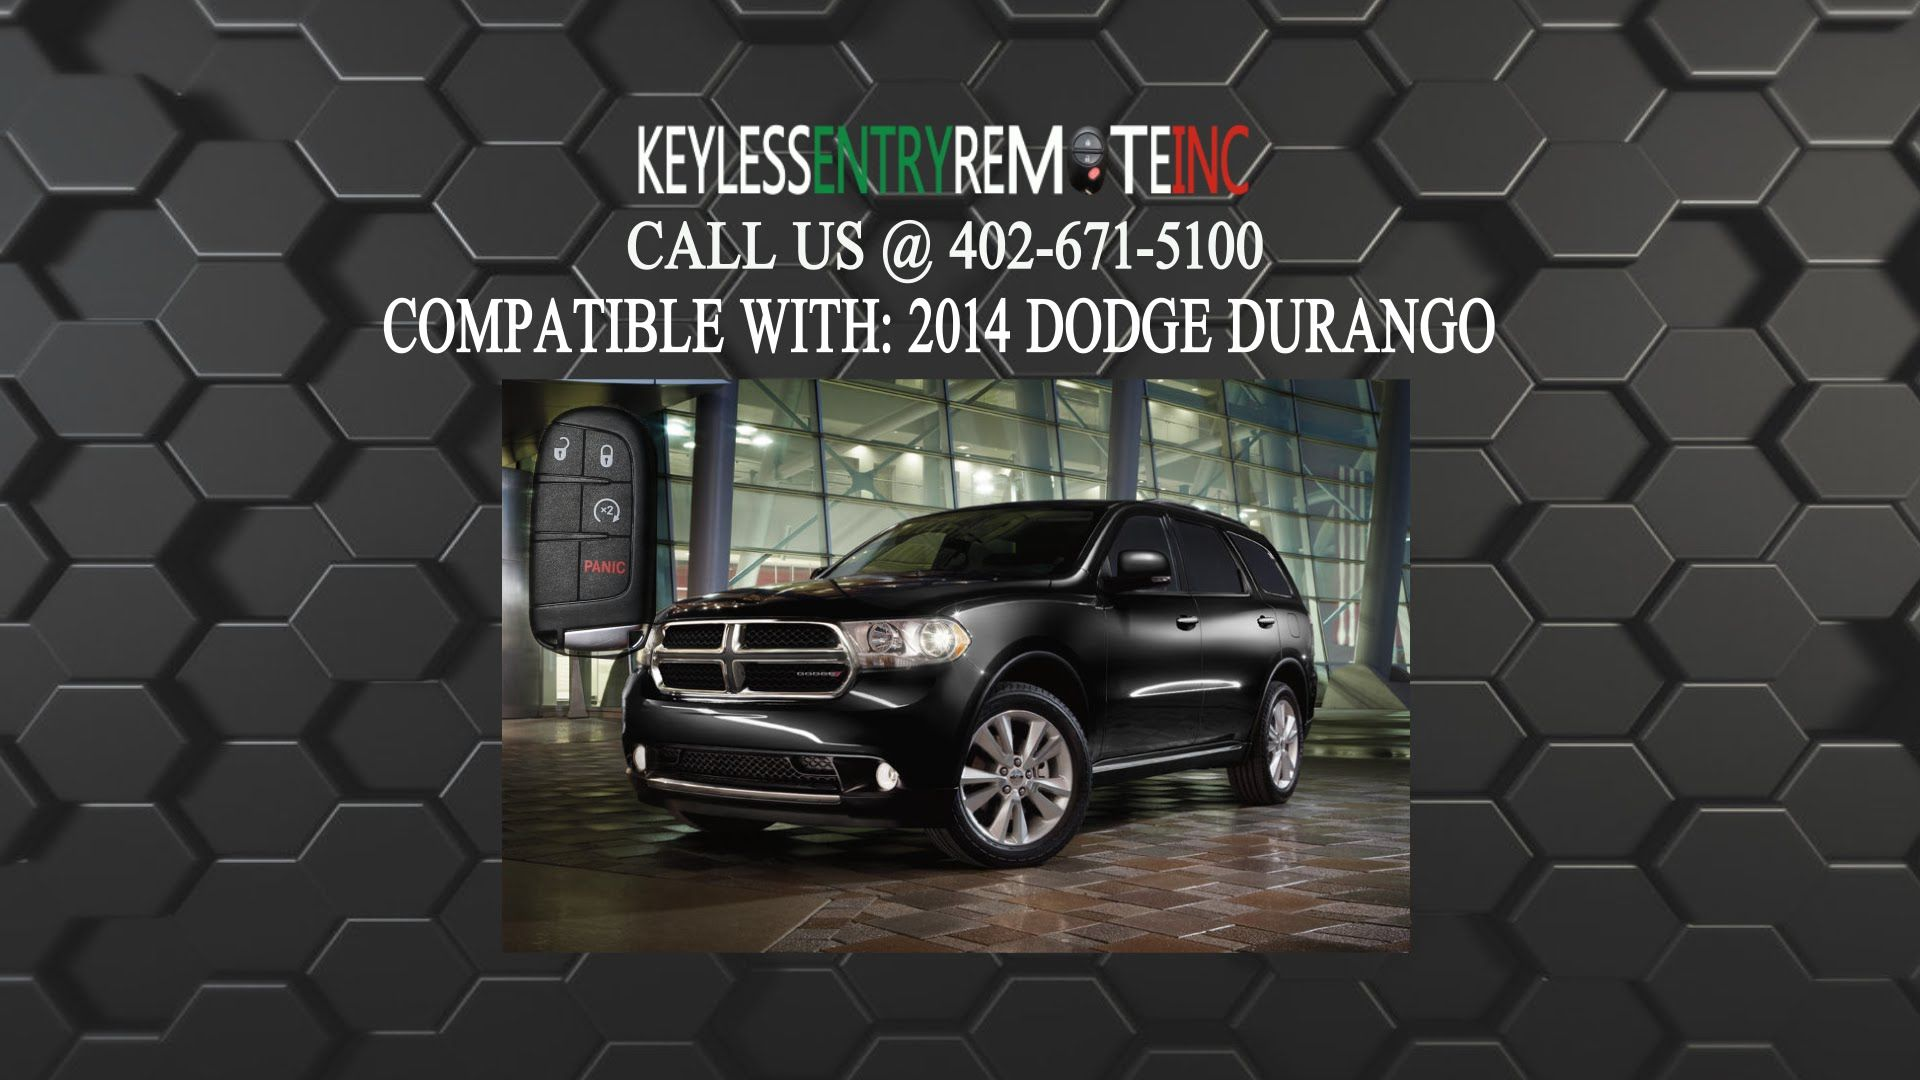 How to replace a dodge durango key fob battery 2014 2016